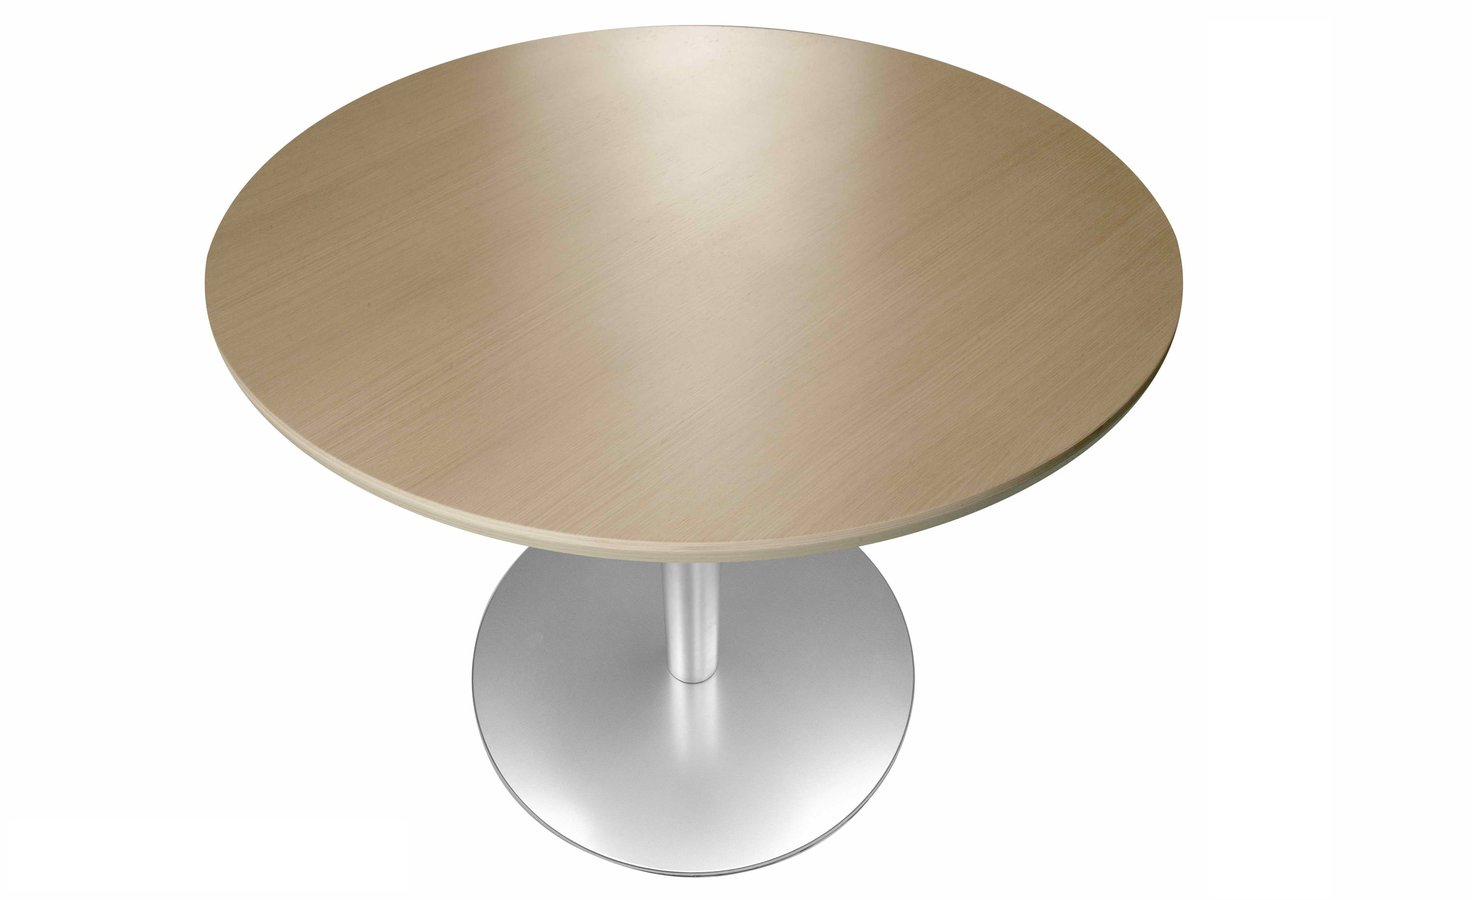 Oval Square Or Round Table In A Variety Of Dimensions And Finishes With Single Solid Leg Supporting The Top Minimalism Formal Simplicity